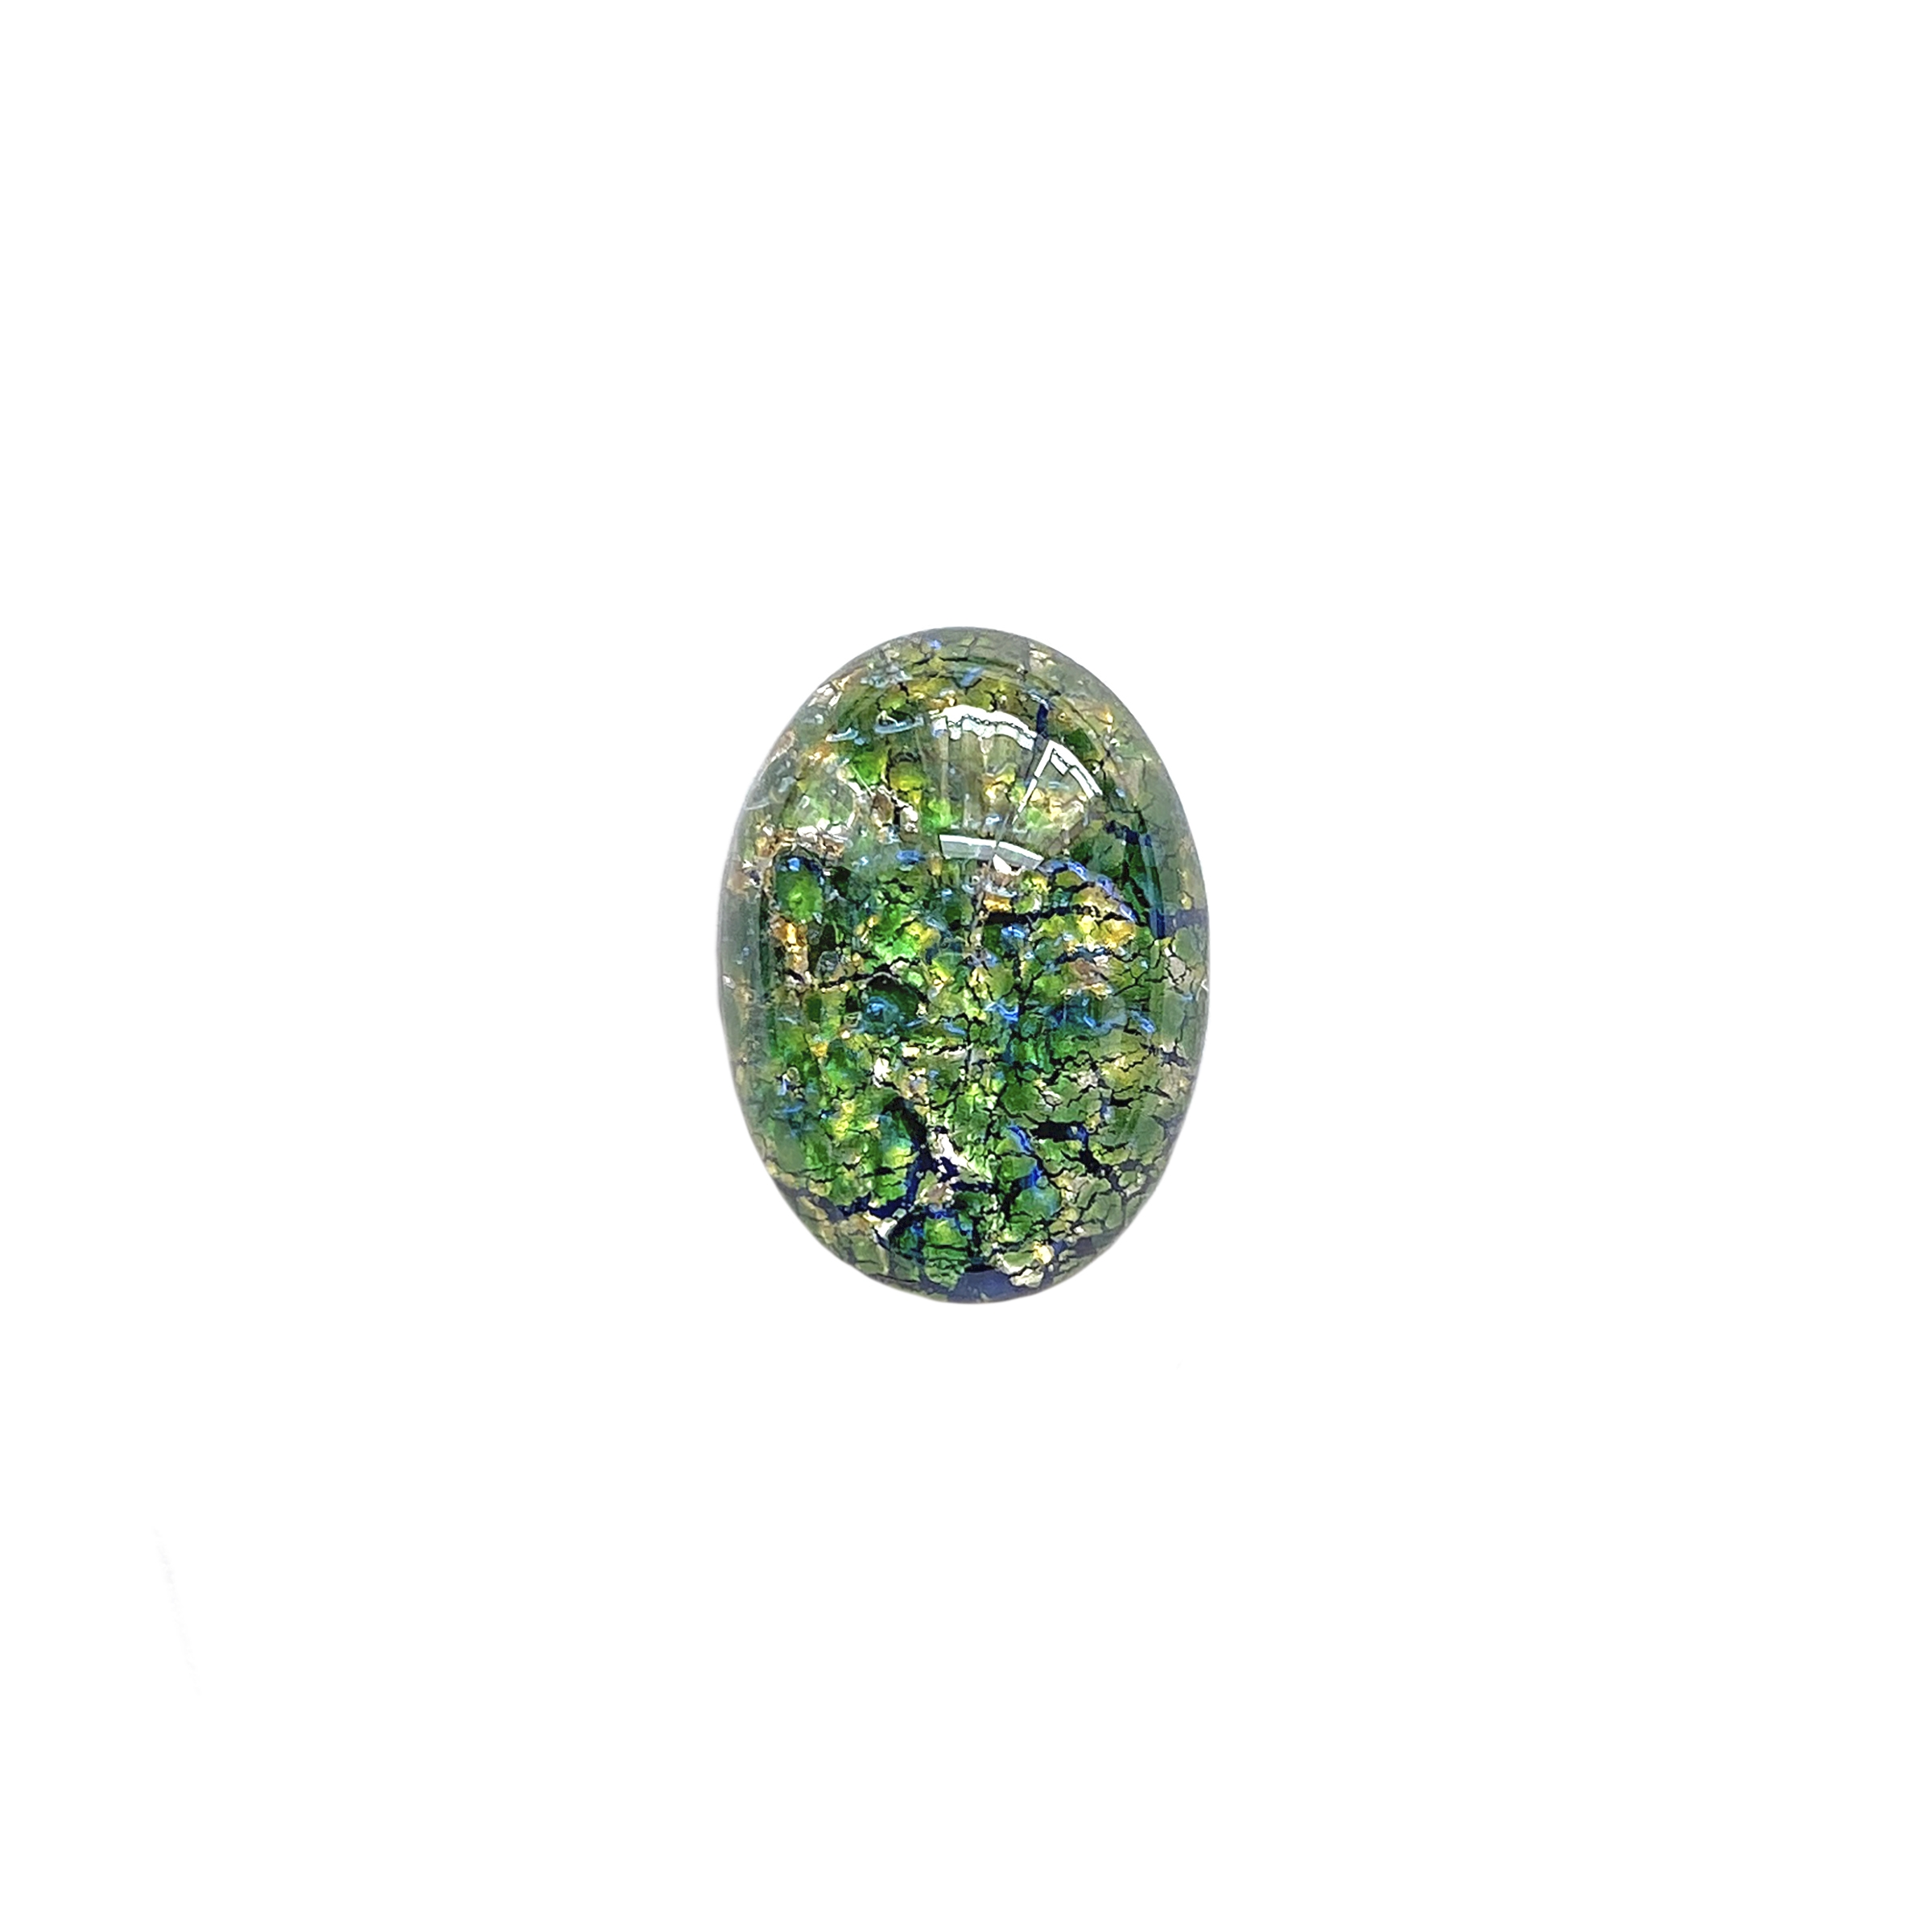 sea green opal, Czech, Preciosa, opal, lampwork stone, stone, sea green opal stone, sea green, oval stone, 18x13mm, simulated imitation, hand-worked glass, glass, glass stone, green-blue, cabochon, B'sue Boutiques, jewelry stone, jewelry making, 01408